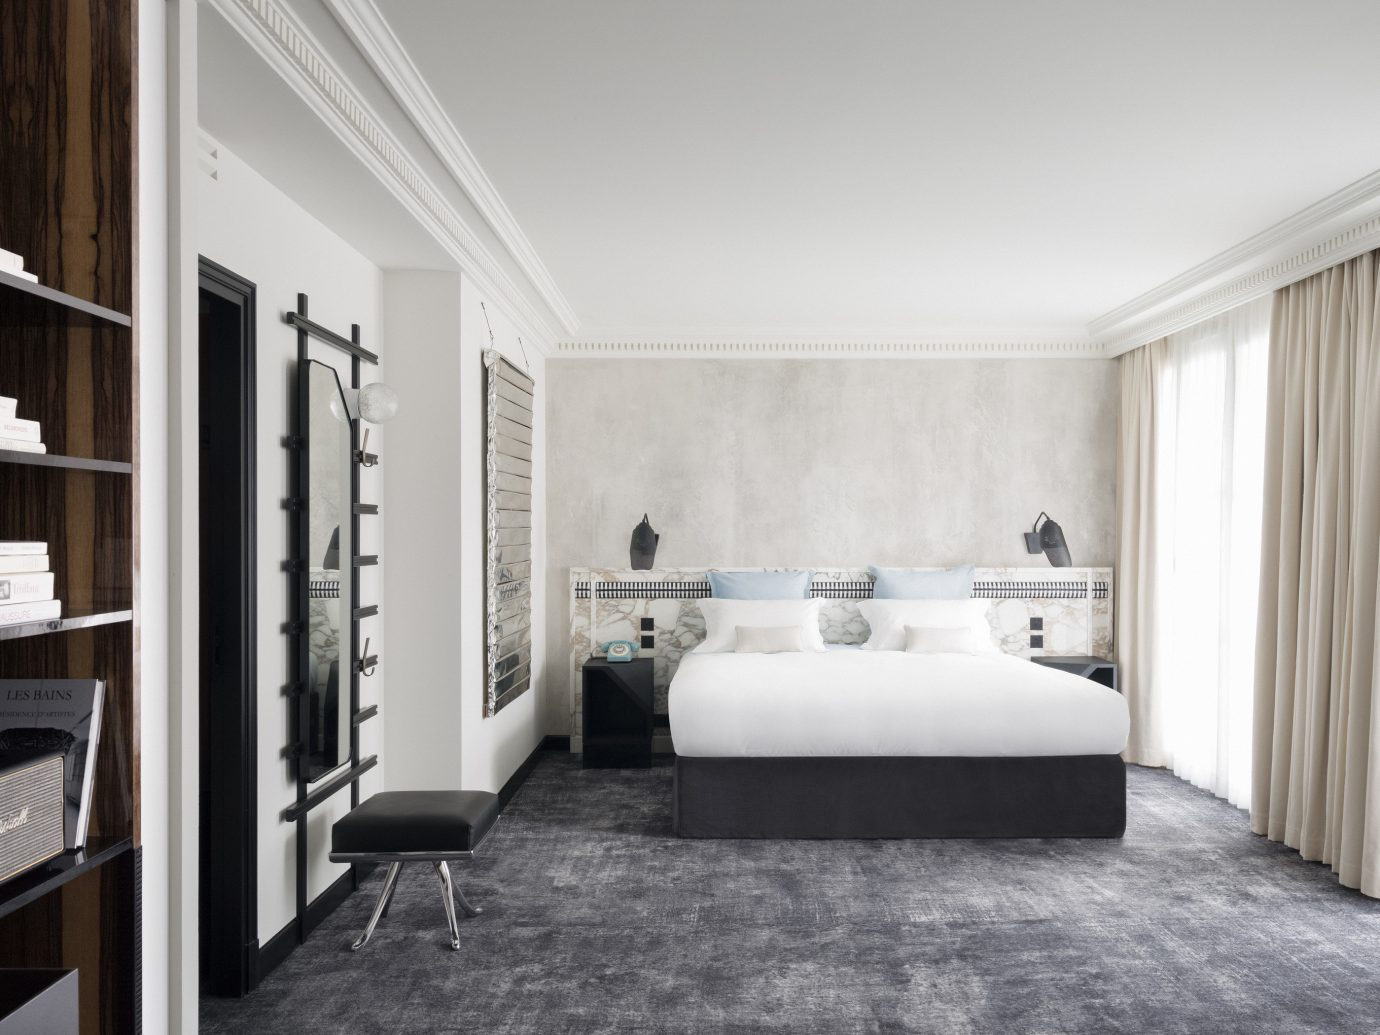 Boutique Hotels Hotels indoor floor wall room property Living living room interior design home real estate estate Bedroom white Suite Design condominium furniture apartment